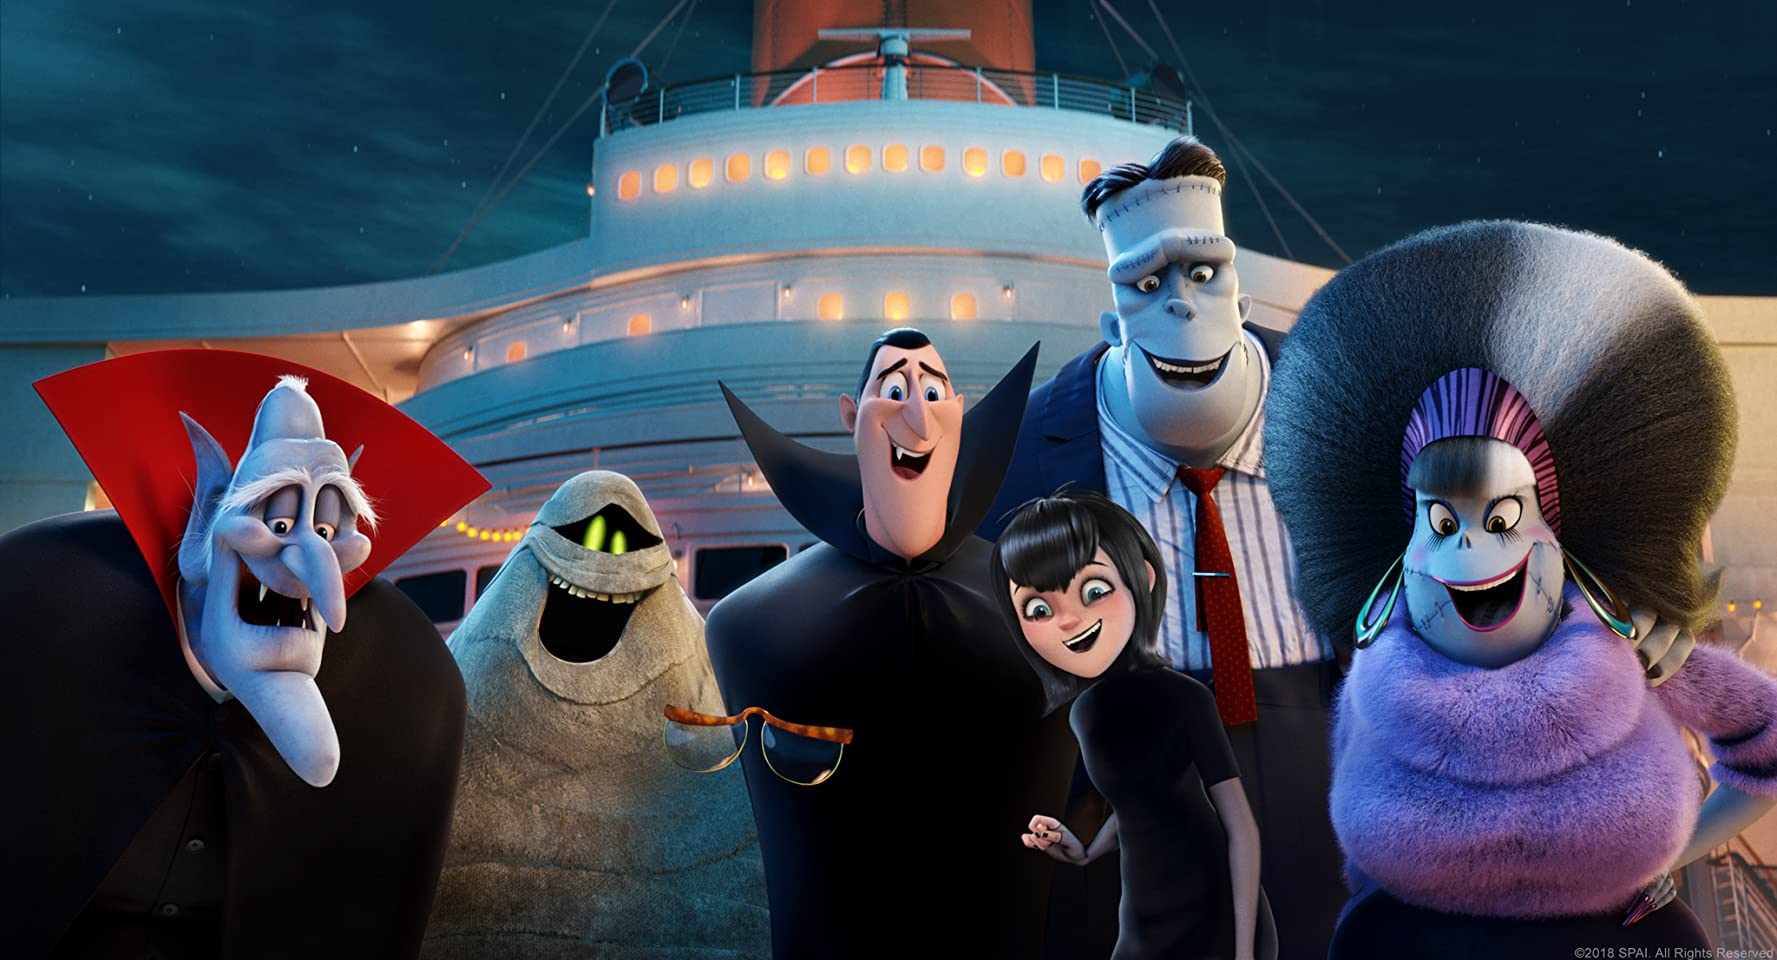 Mel Brooks, Fran Drescher, Adam Sandler, David Spade, Kevin James, Keegan-Michael Key, and Selena Gomez in Hotel Transylvania 3: Summer Vacation (2018)